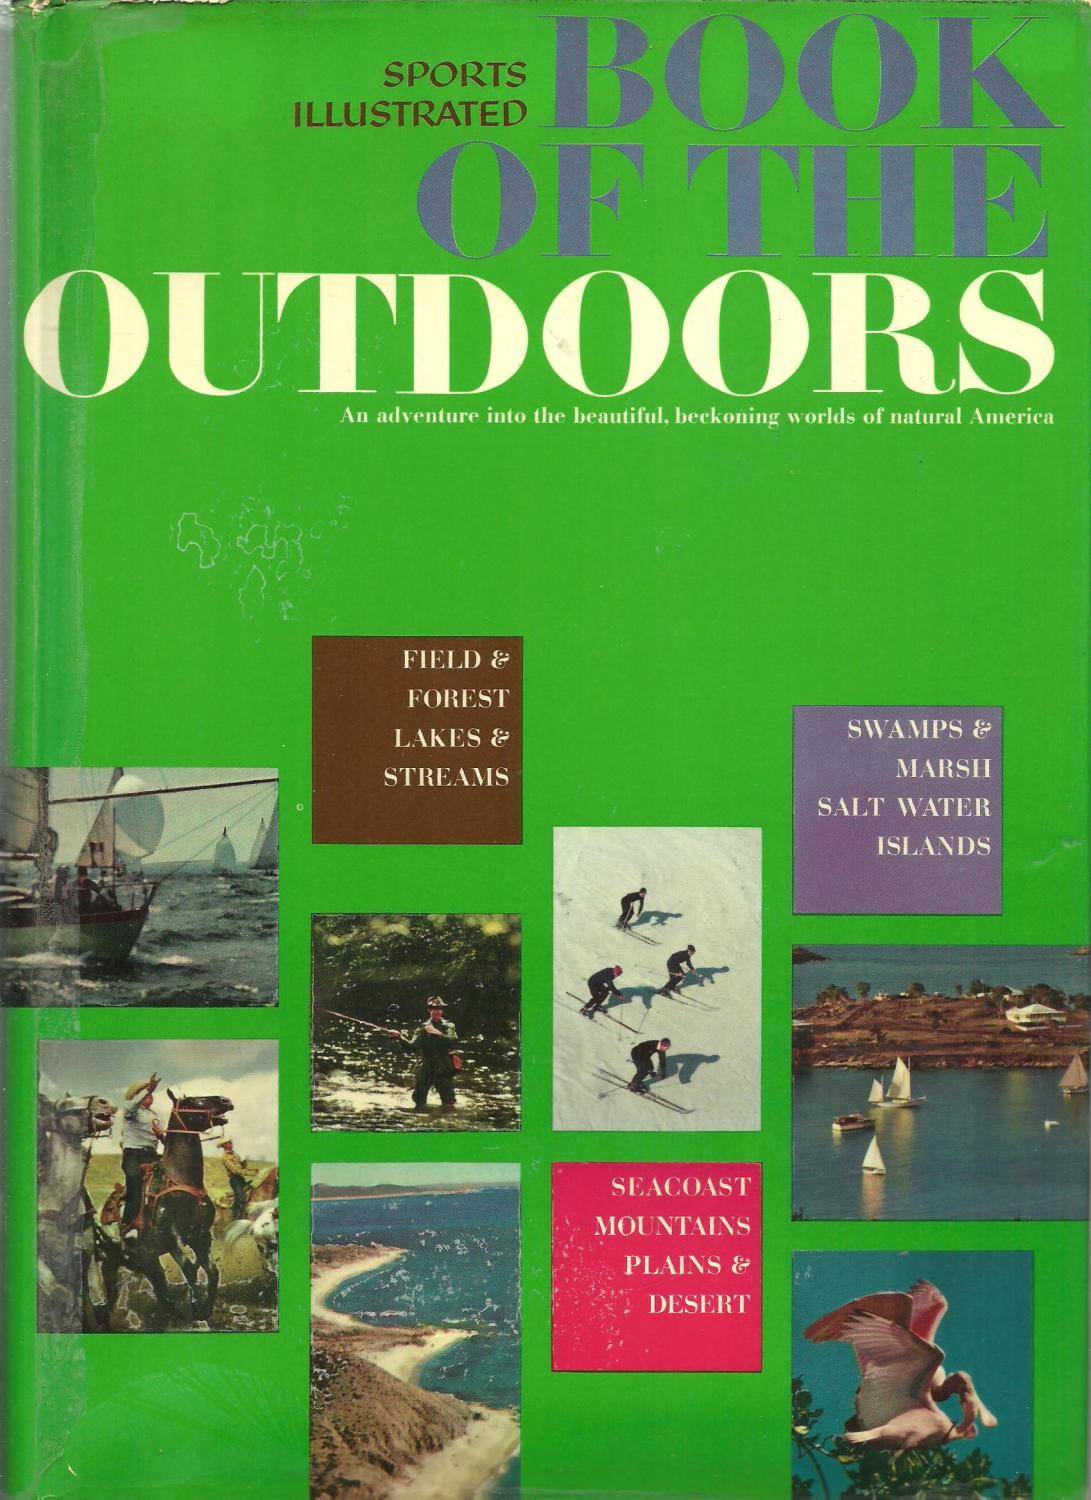 Sports Illustrated Book of The Outdoors Text by John O'Reilly [Very Good] [Hardcover]